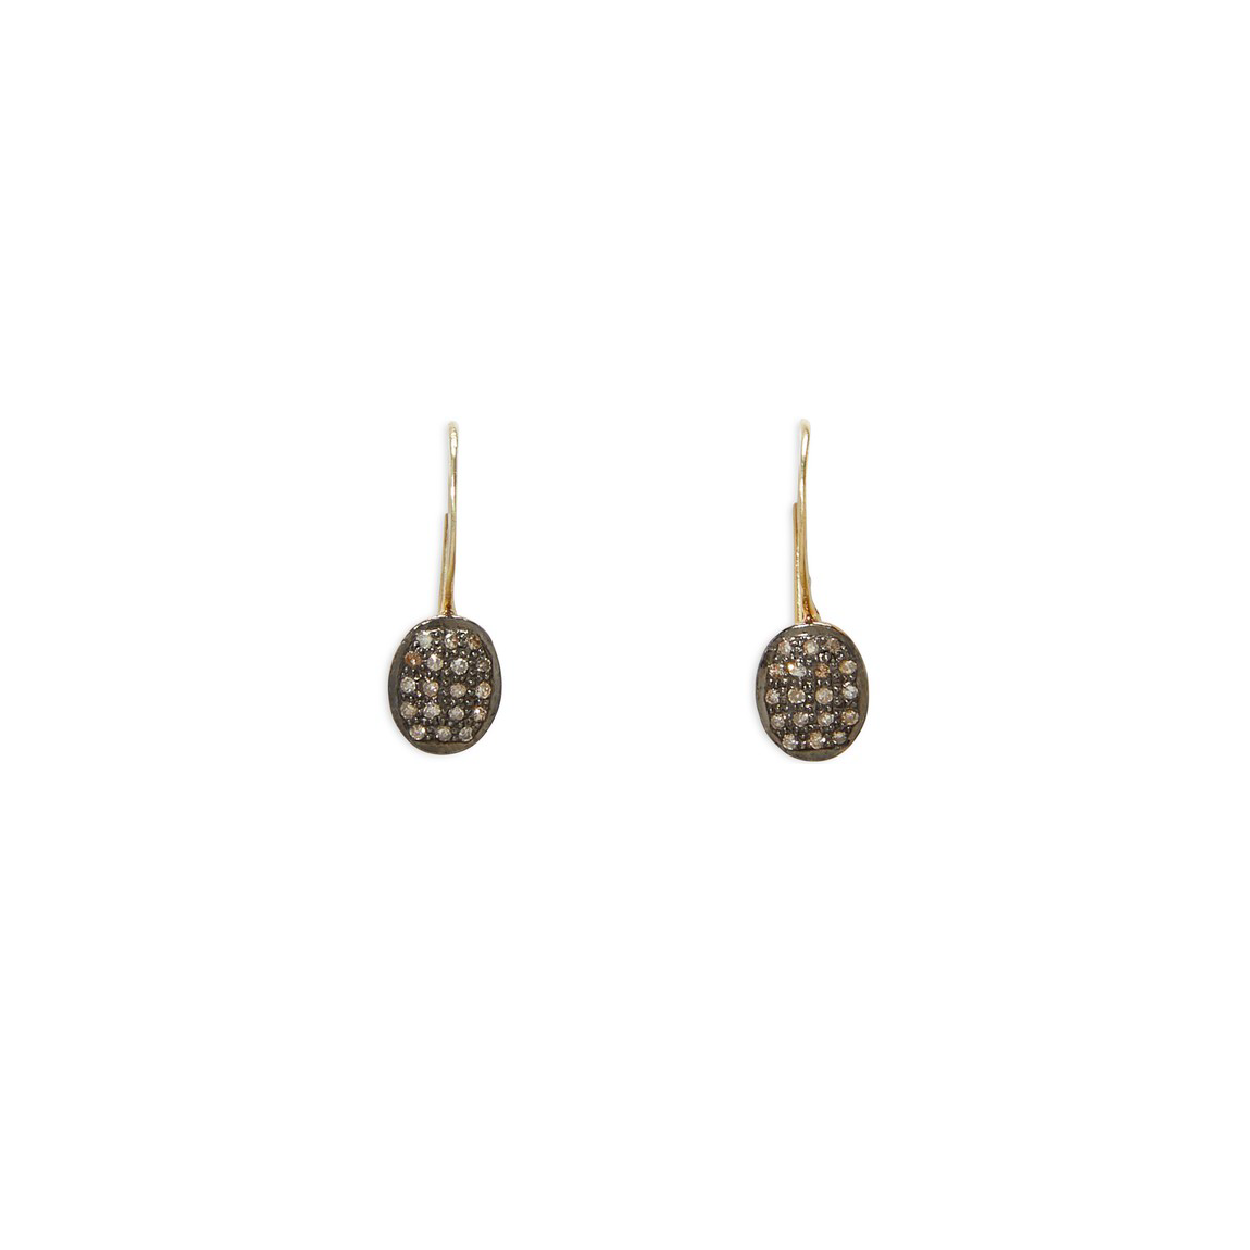 PILLI DIAMOND EARRINGS